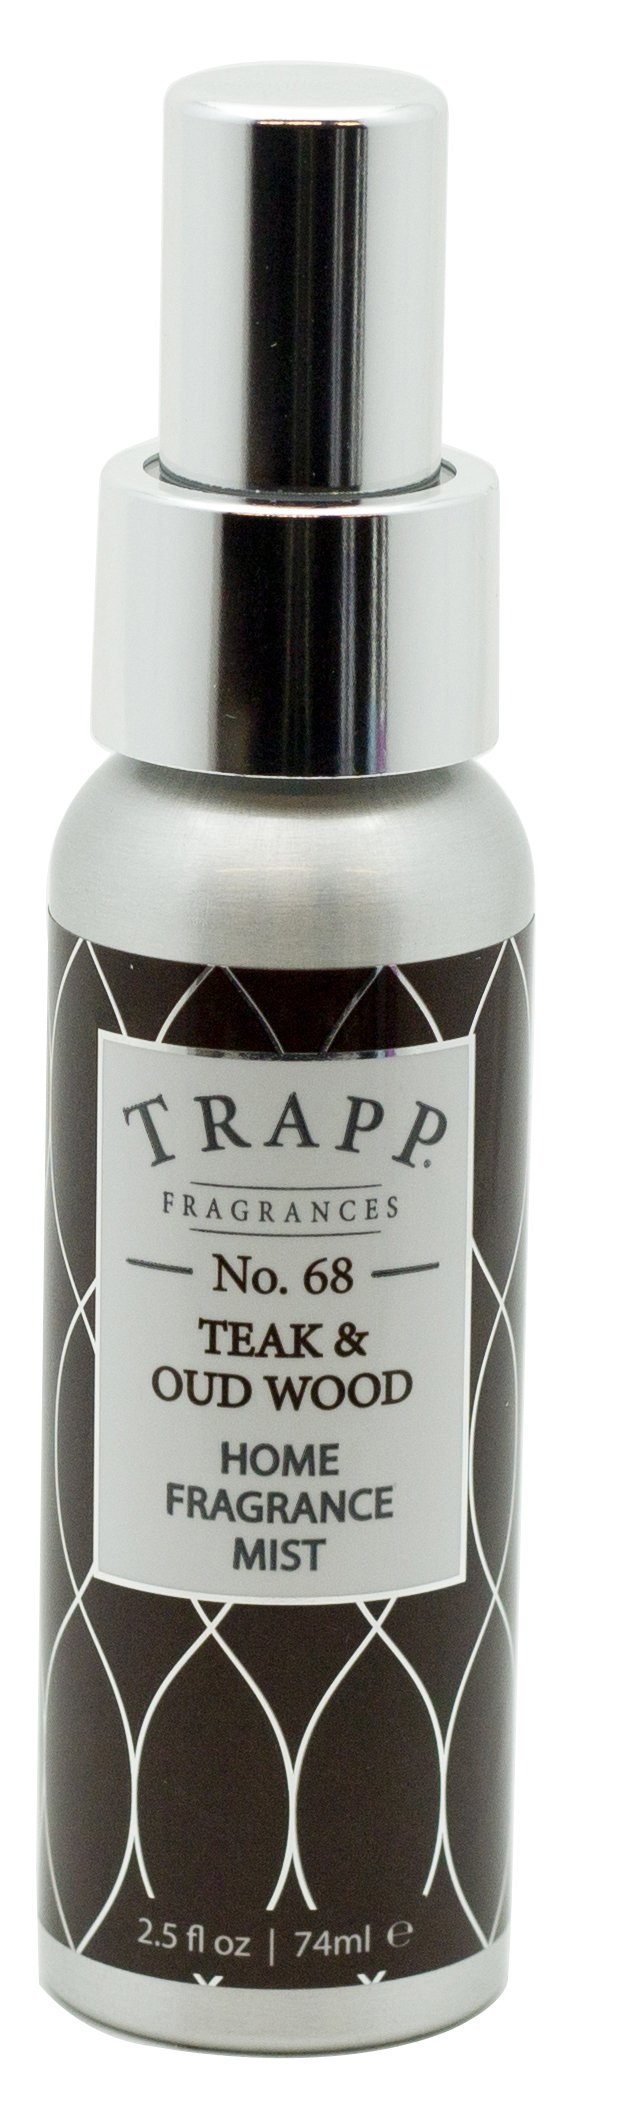 Trapp Home Fragrance Mist, No. 68 Teak & Oud Wood, 2.5-Ounces by Trapp (Image #1)